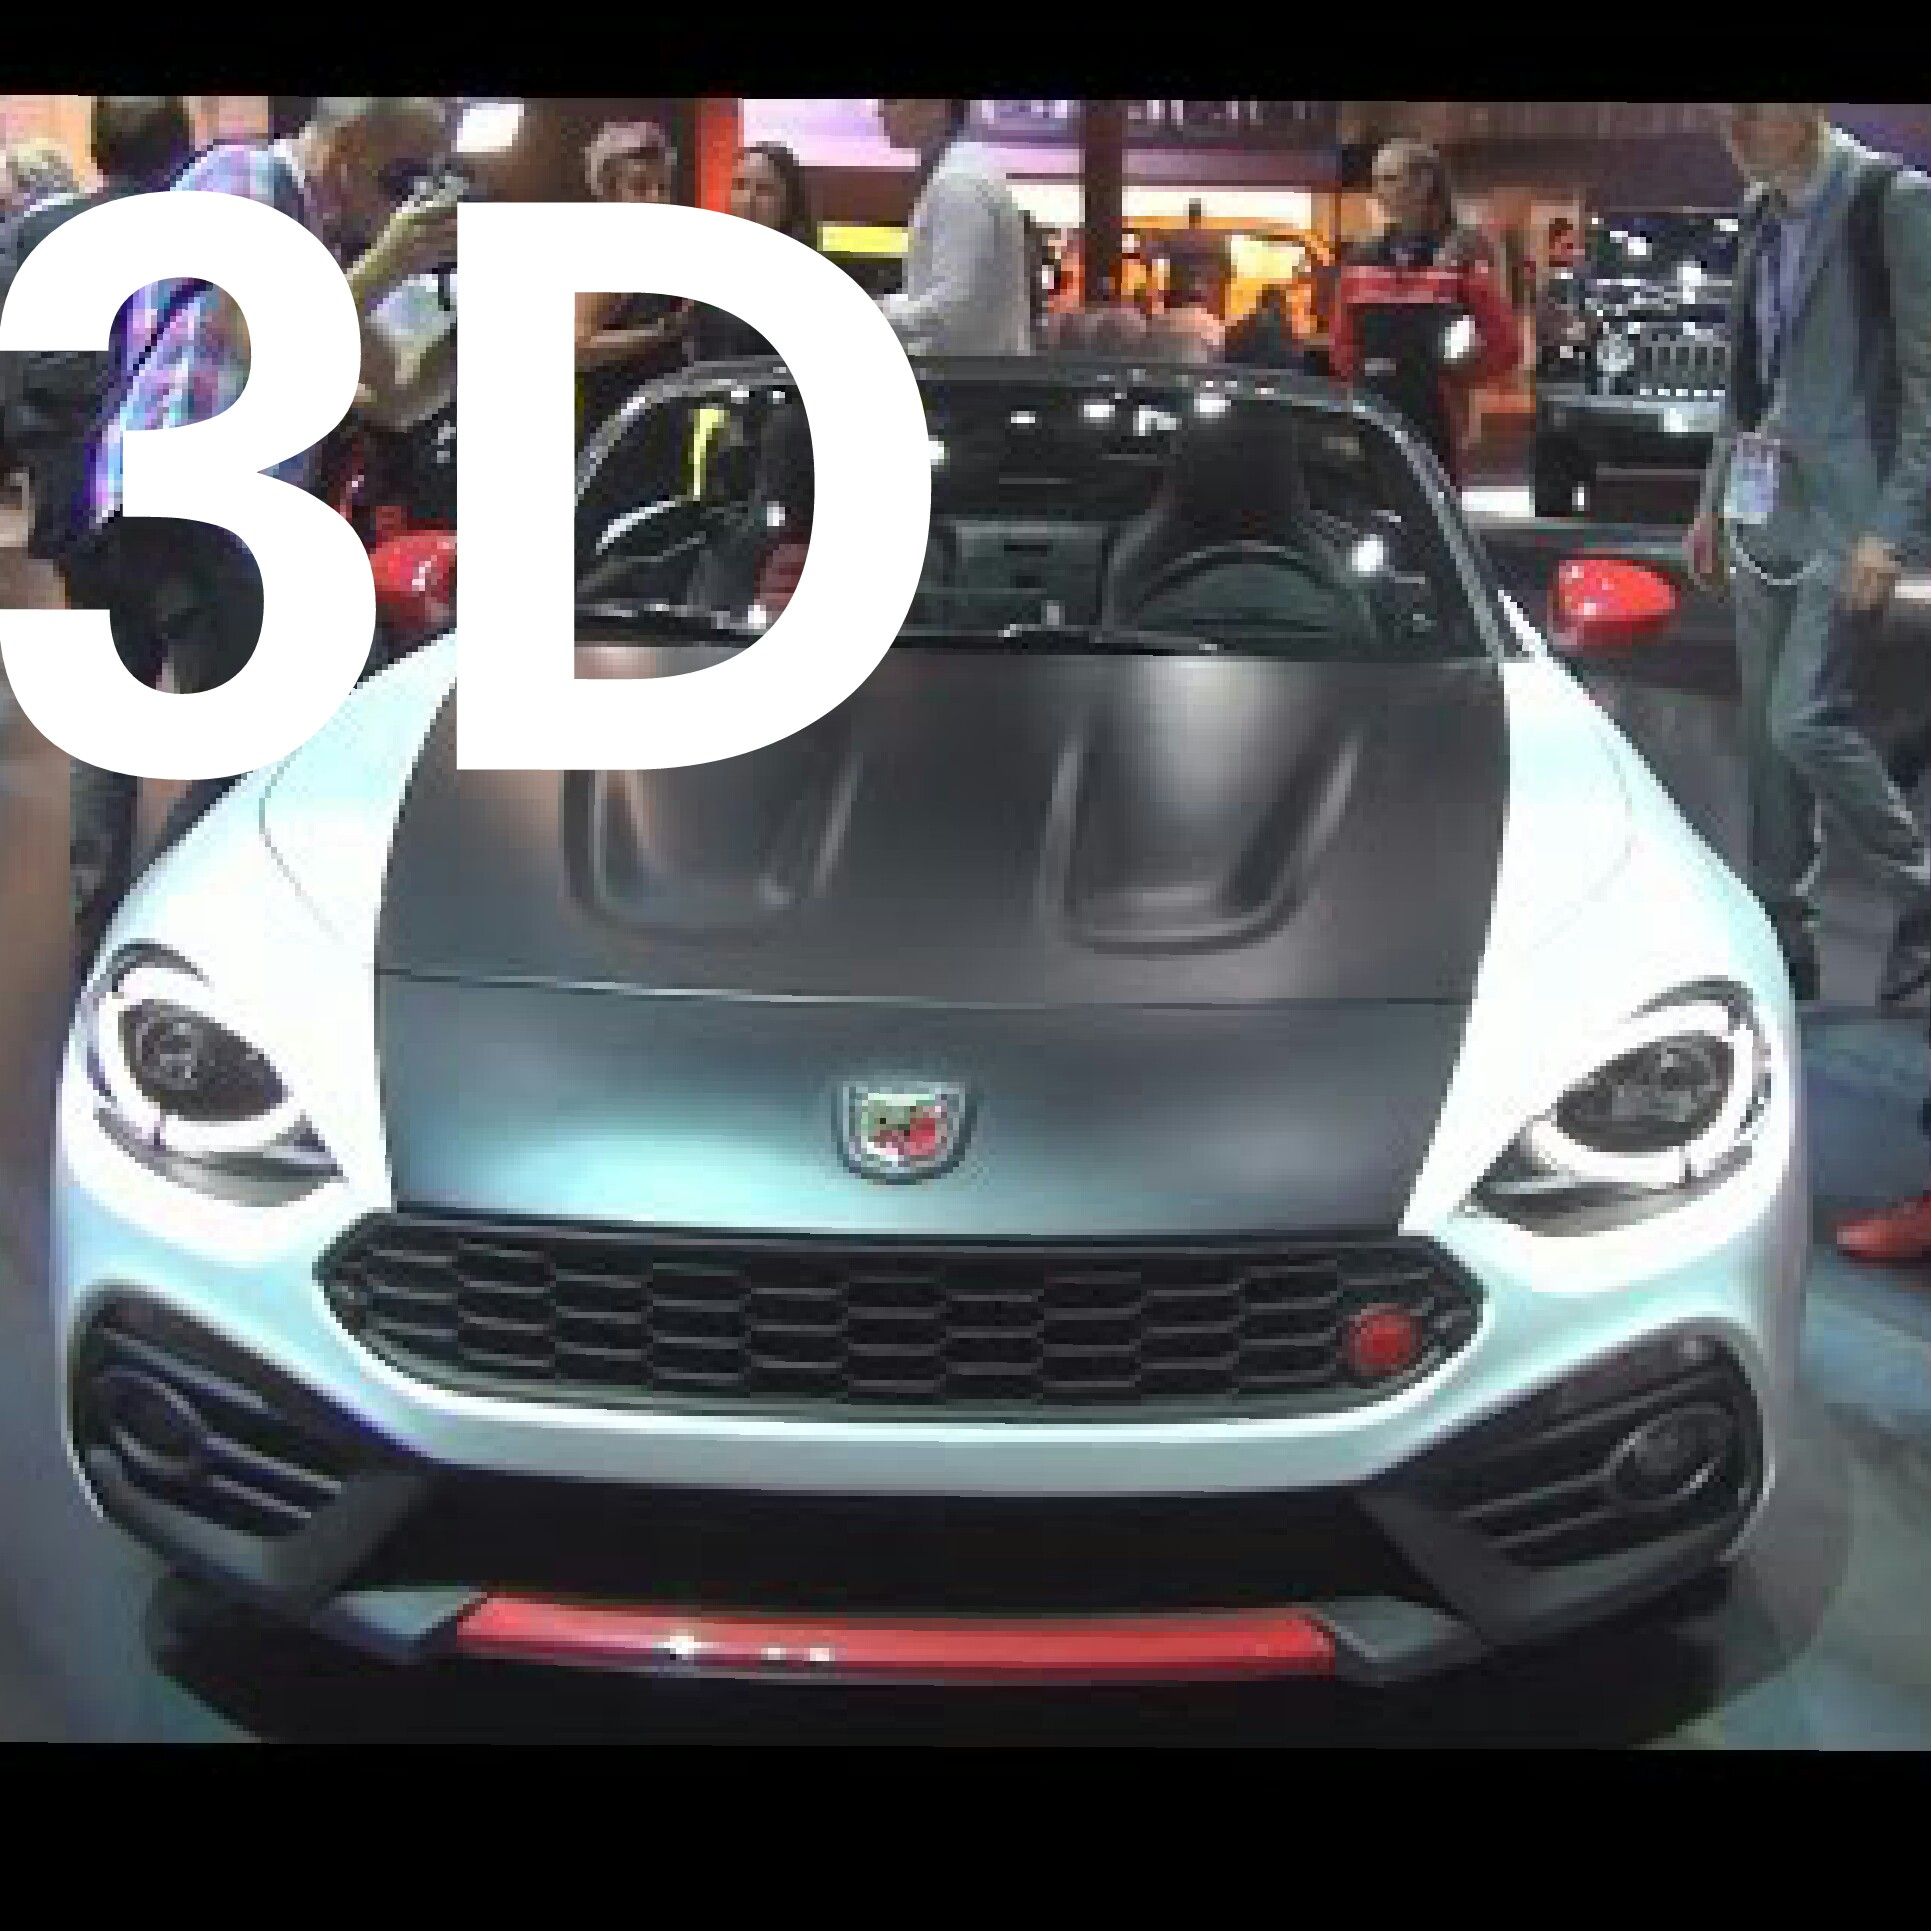 #FiatAbarth Fiat Abarth 124 Spider (2017) Exterior and Interior in 3D